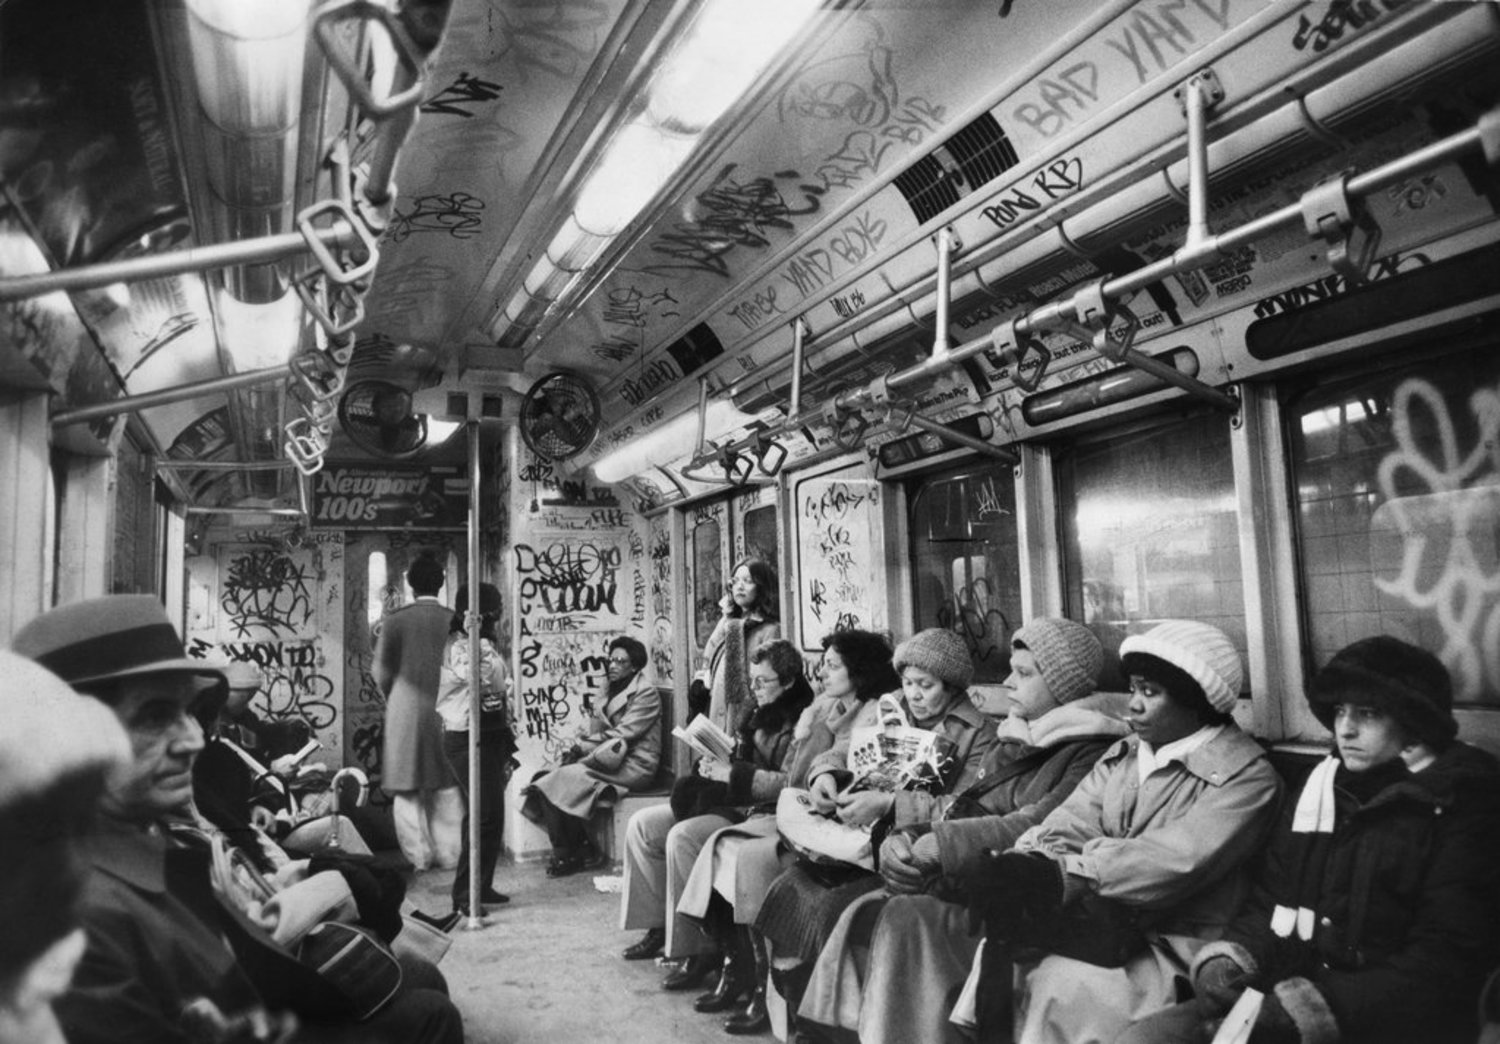 "March 5, 1981: Passengers on the New York subway, which was projecting a $369 million deficit that year. A brief story in The Times explained that a tax on oil companies passed by New York lawmakers was intended to narrow that deficit, but that a Federal appeals court effectively abolished the tax, ""which had been counted on to produce more than $235 million a year, most of it earmarked for the cash-starved Metropolitan Transportation Authority."""